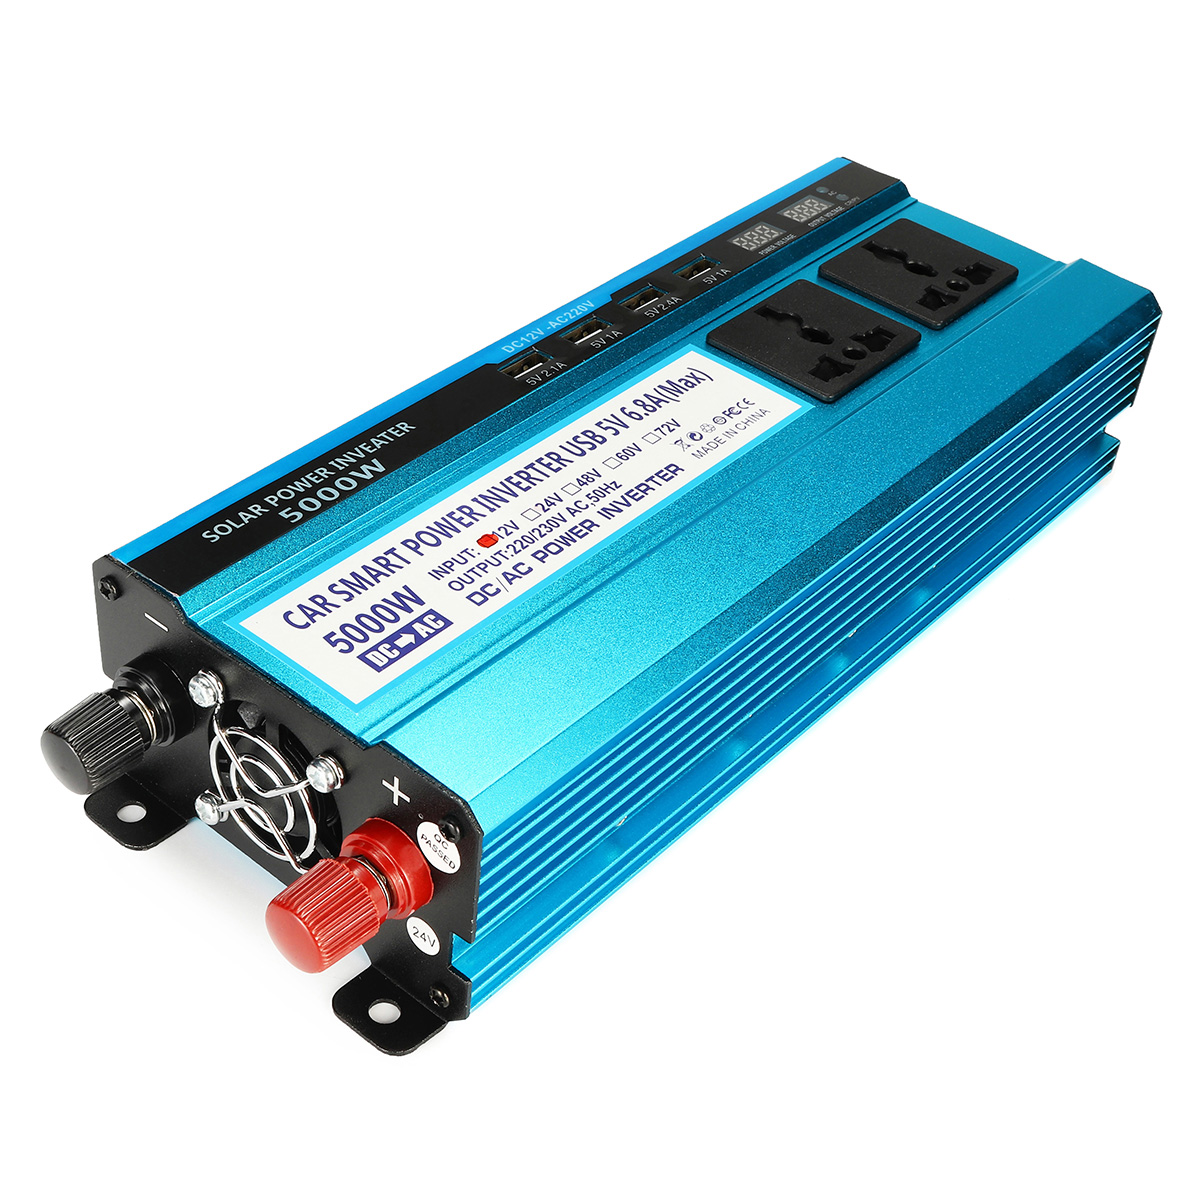 2200W Peak Solar Power Inverter Dual LED Screens 12V/24V DC to 220V AC Modified Sine Wave Converter